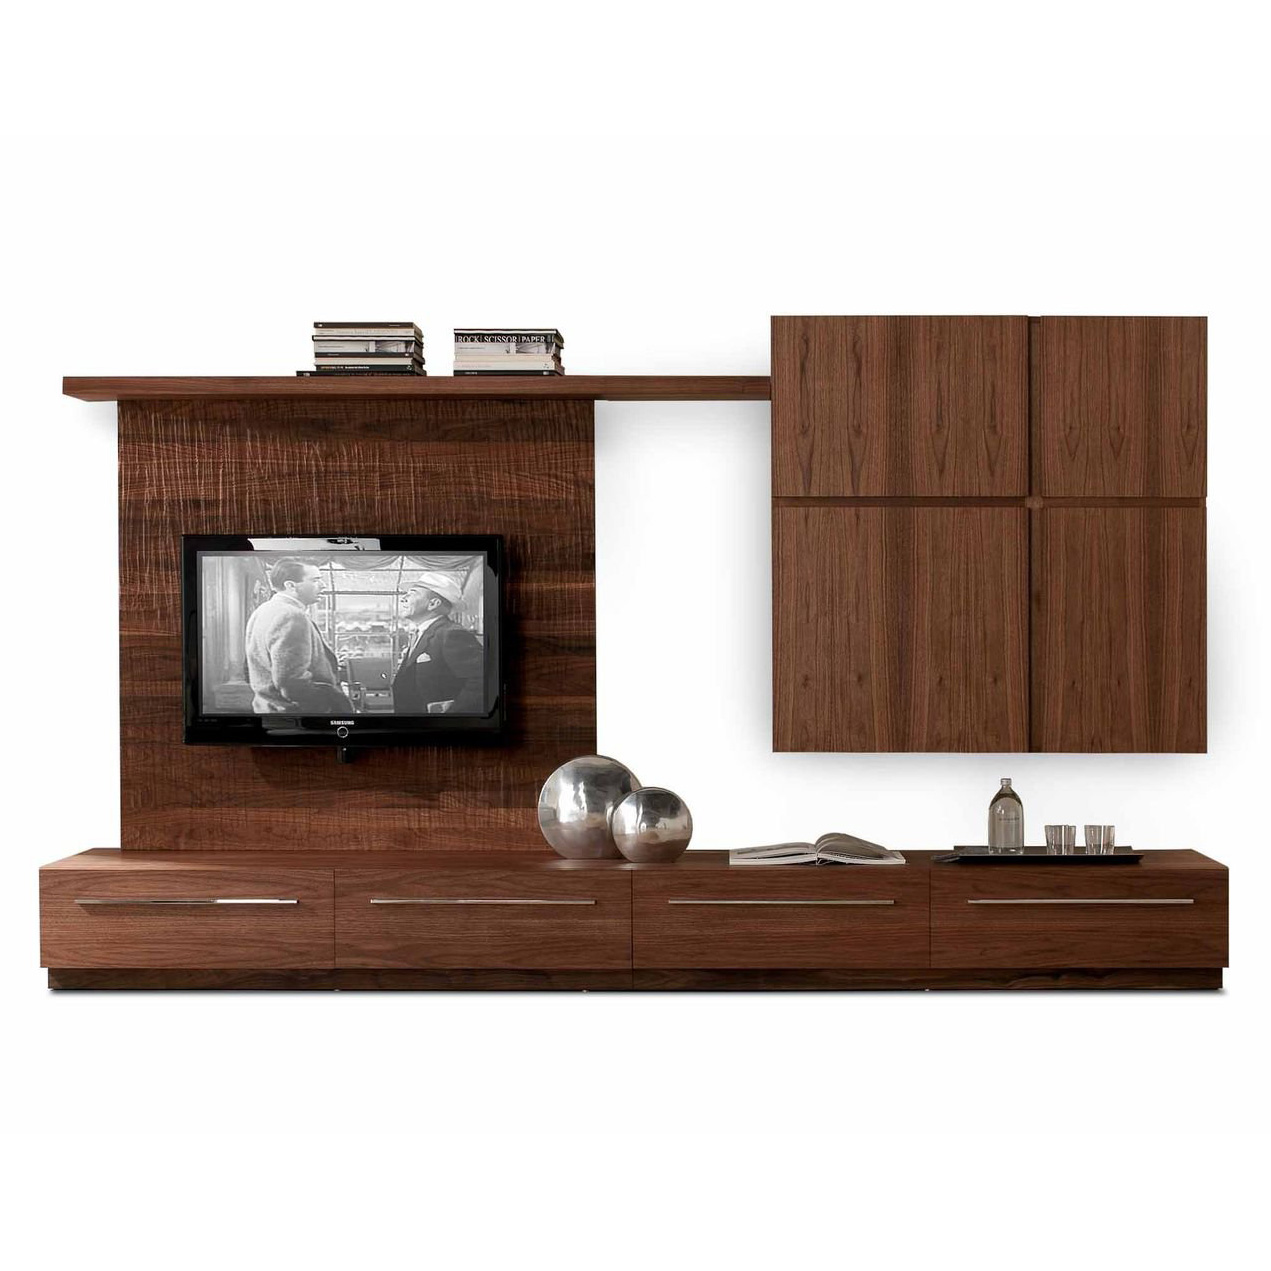 Sipario 2008 cabinet from Riva 1920, designed by C.R. & S. Riva 1920